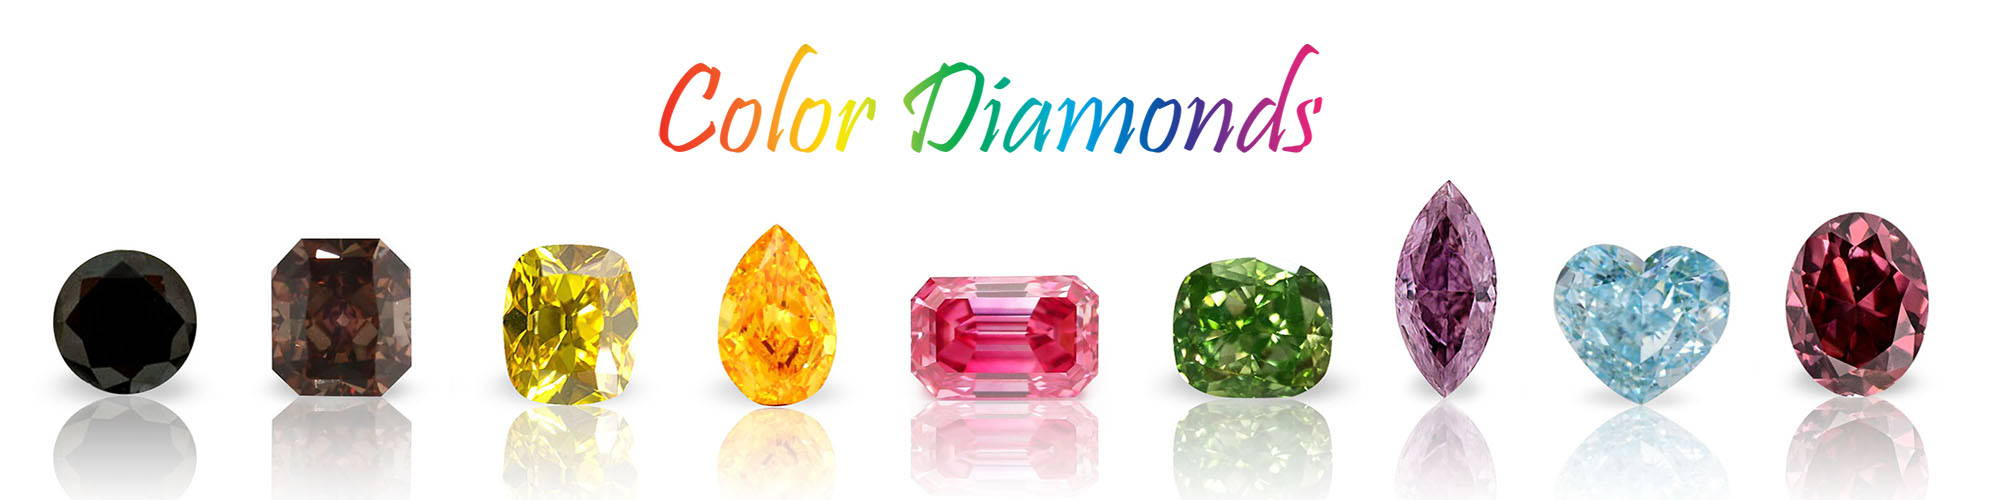 diamond fancy history color lore and